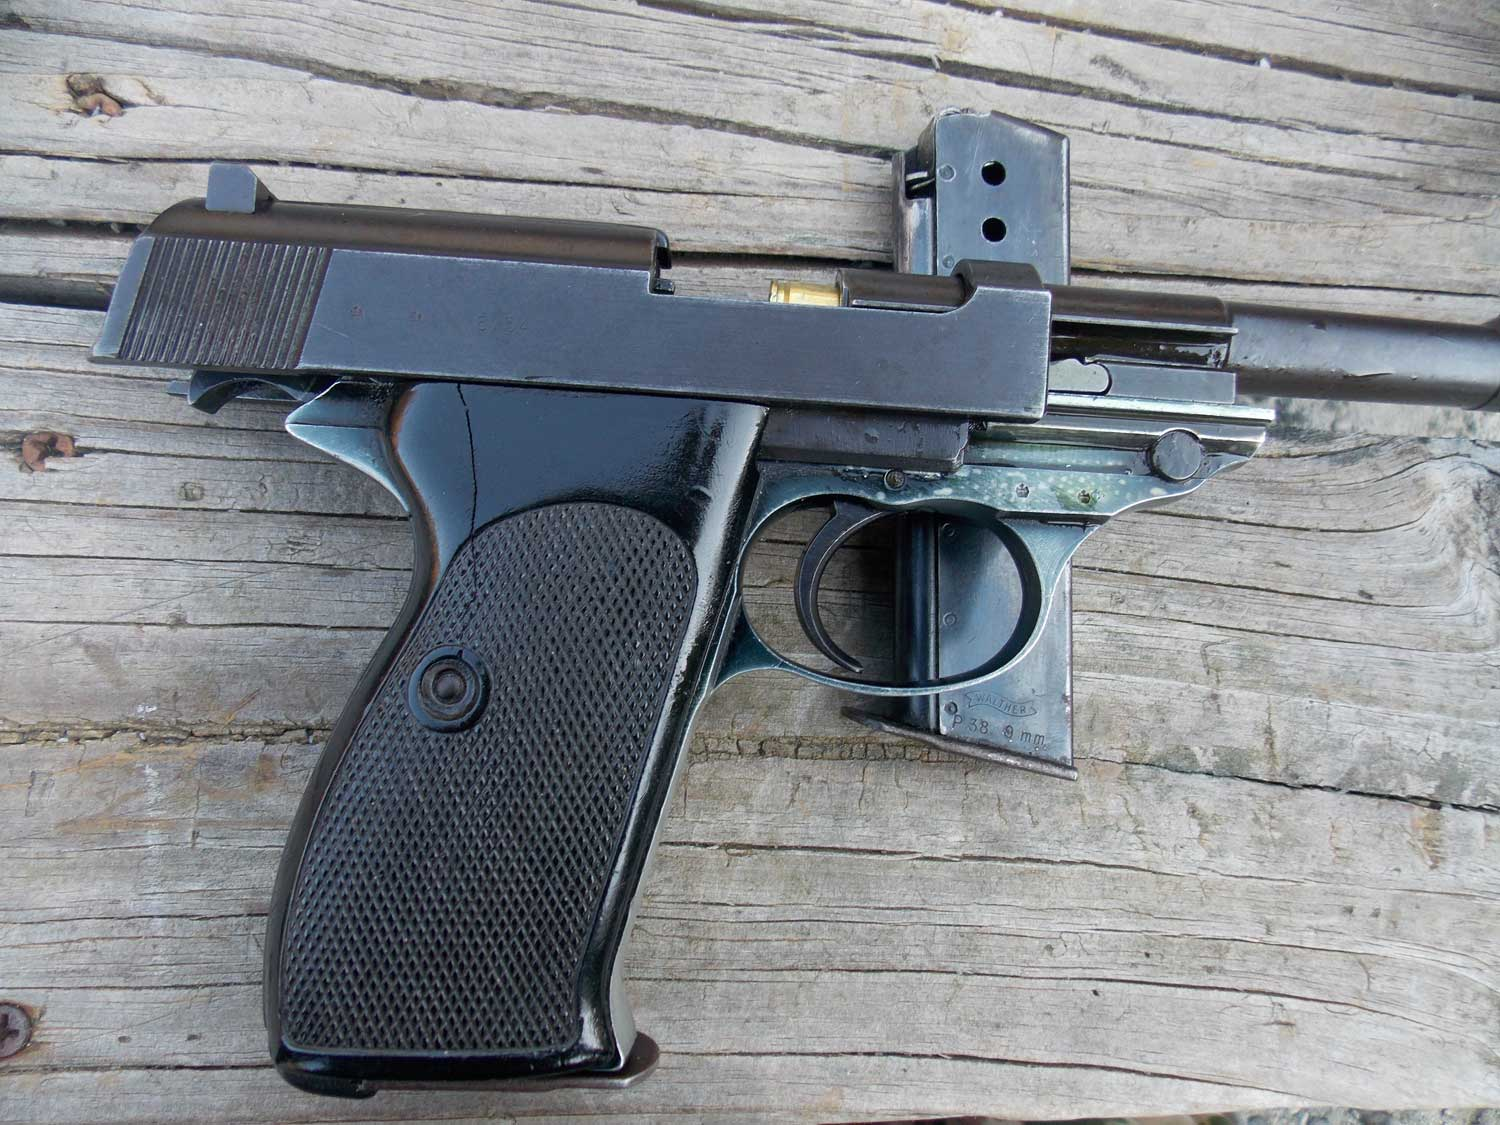 Old Walther pistol